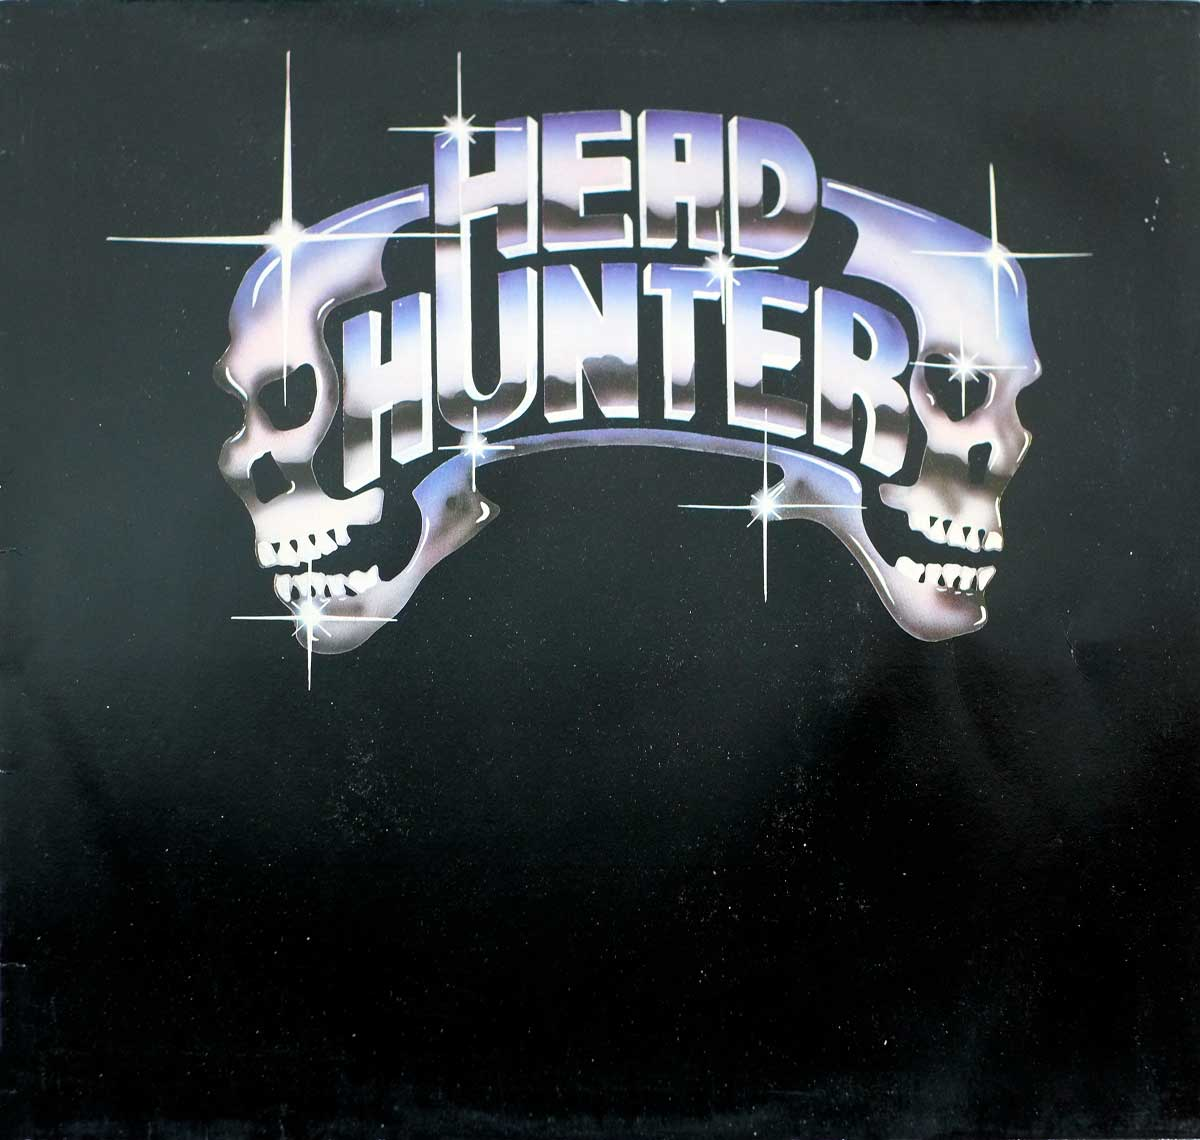 Album Front Cover Photo of HEADHUNTER Head hunter CELTIC FROST NETZ KILLER krokus CHINA